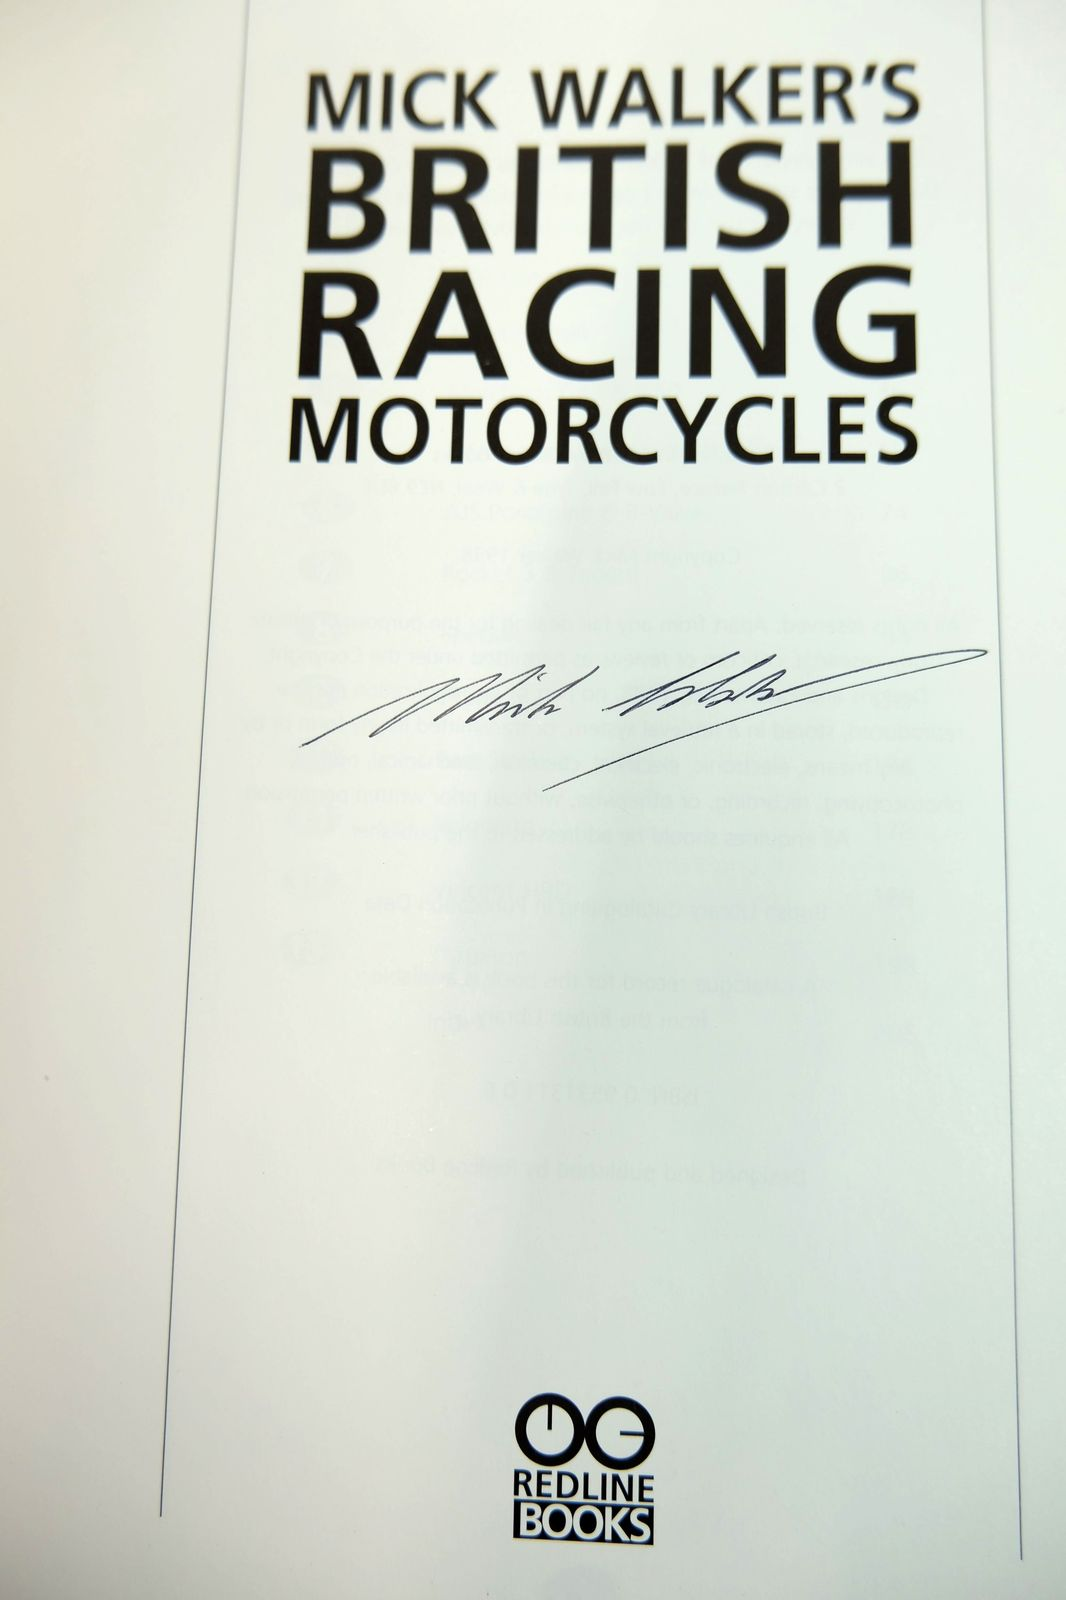 Photo of MICK WALKER'S BRITISH RACING MOTORCYCLES written by Walker, Mick published by Redline Books (STOCK CODE: 1818711)  for sale by Stella & Rose's Books